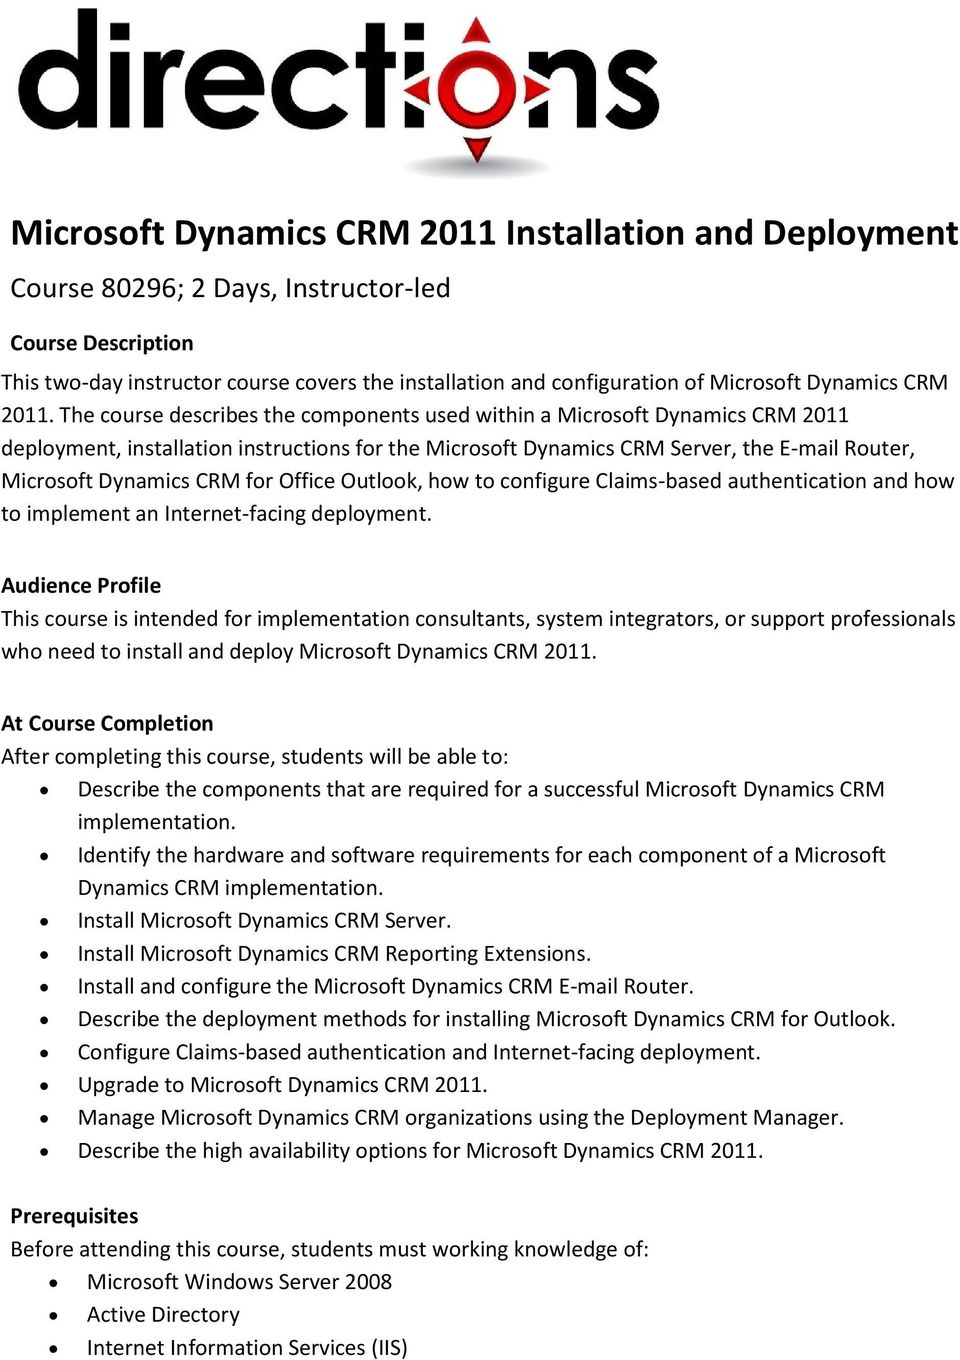 The course describes the components used within a Microsoft Dynamics CRM 2011 deployment, installation instructions for the Microsoft Dynamics CRM Server, the E-mail Router, Microsoft Dynamics CRM